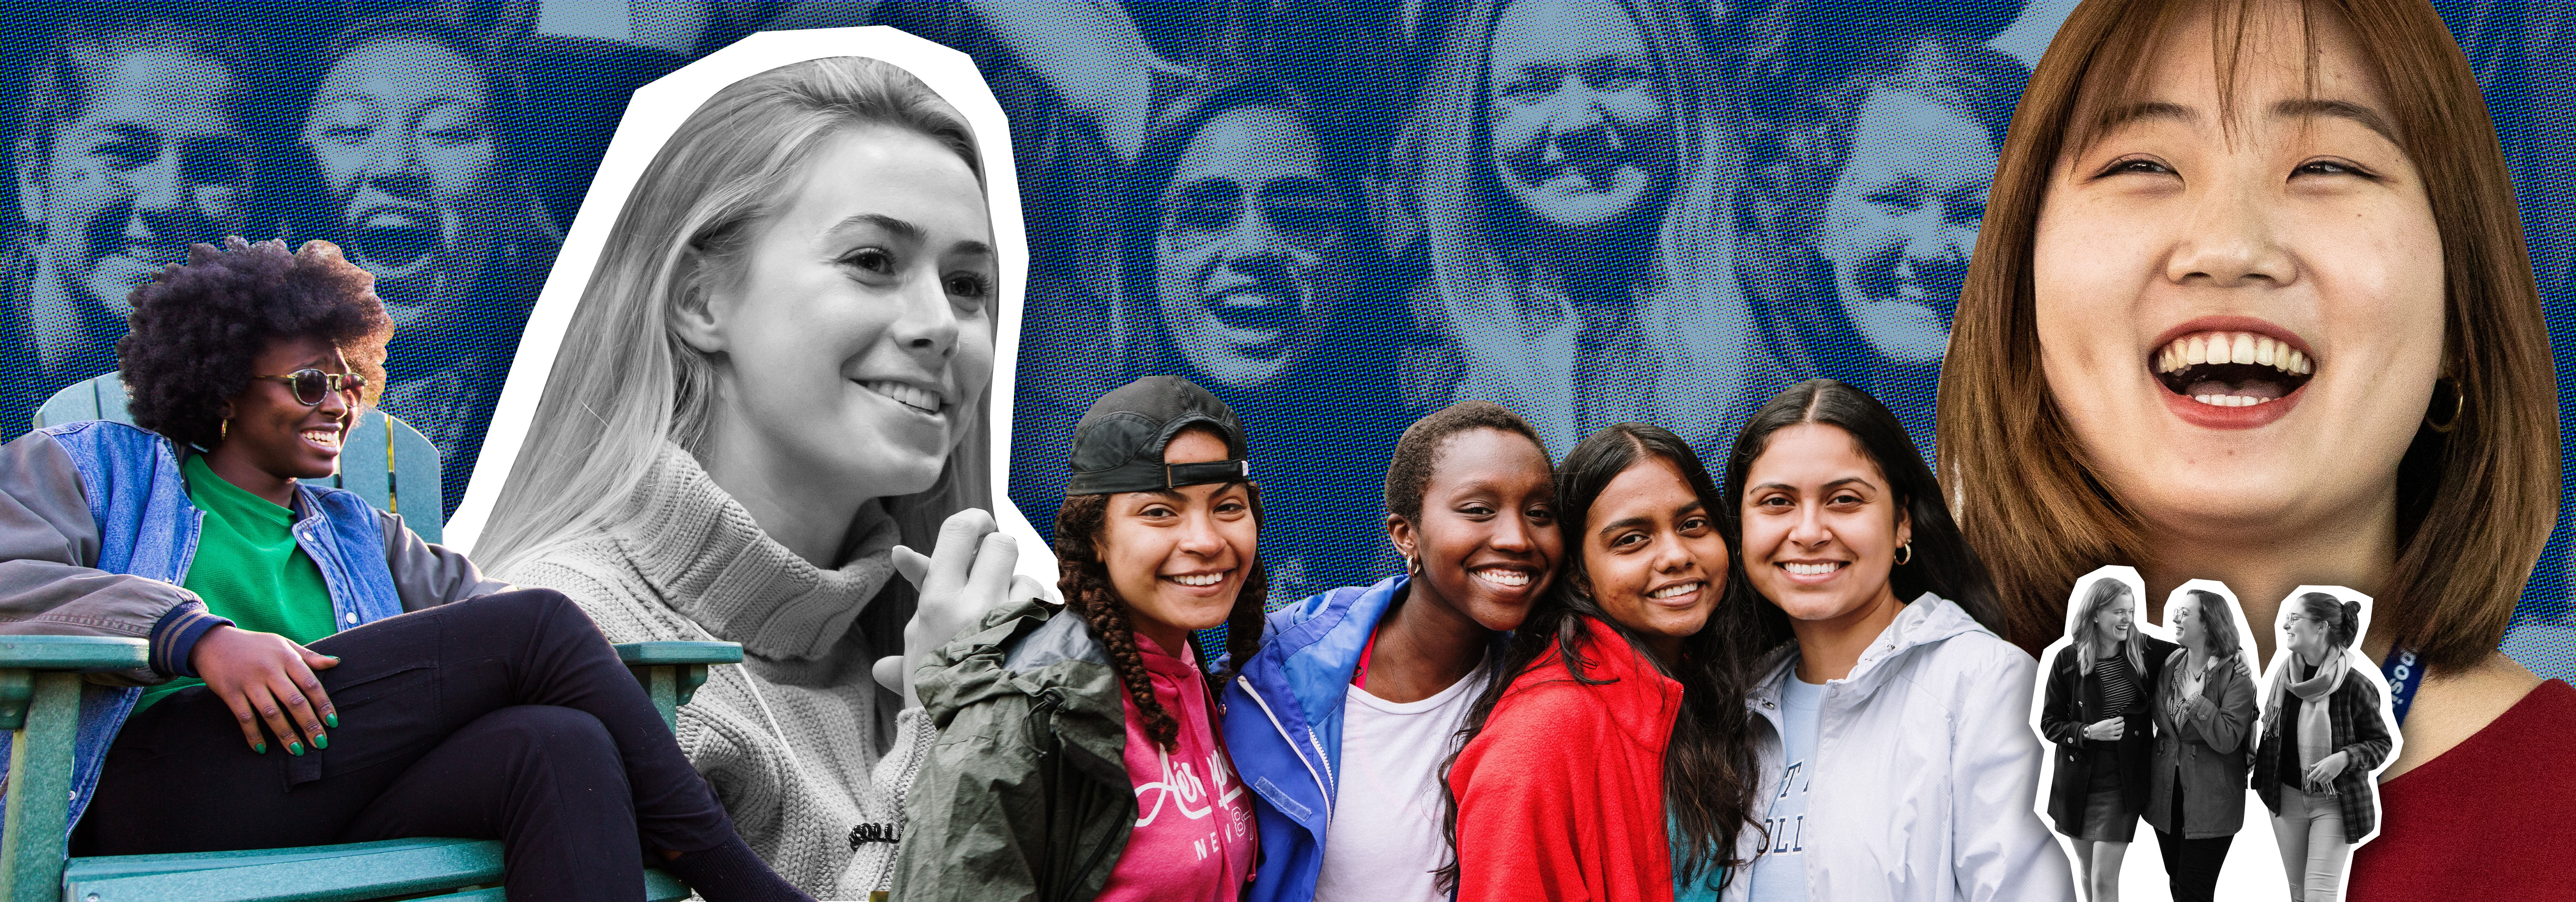 Montage photo of students